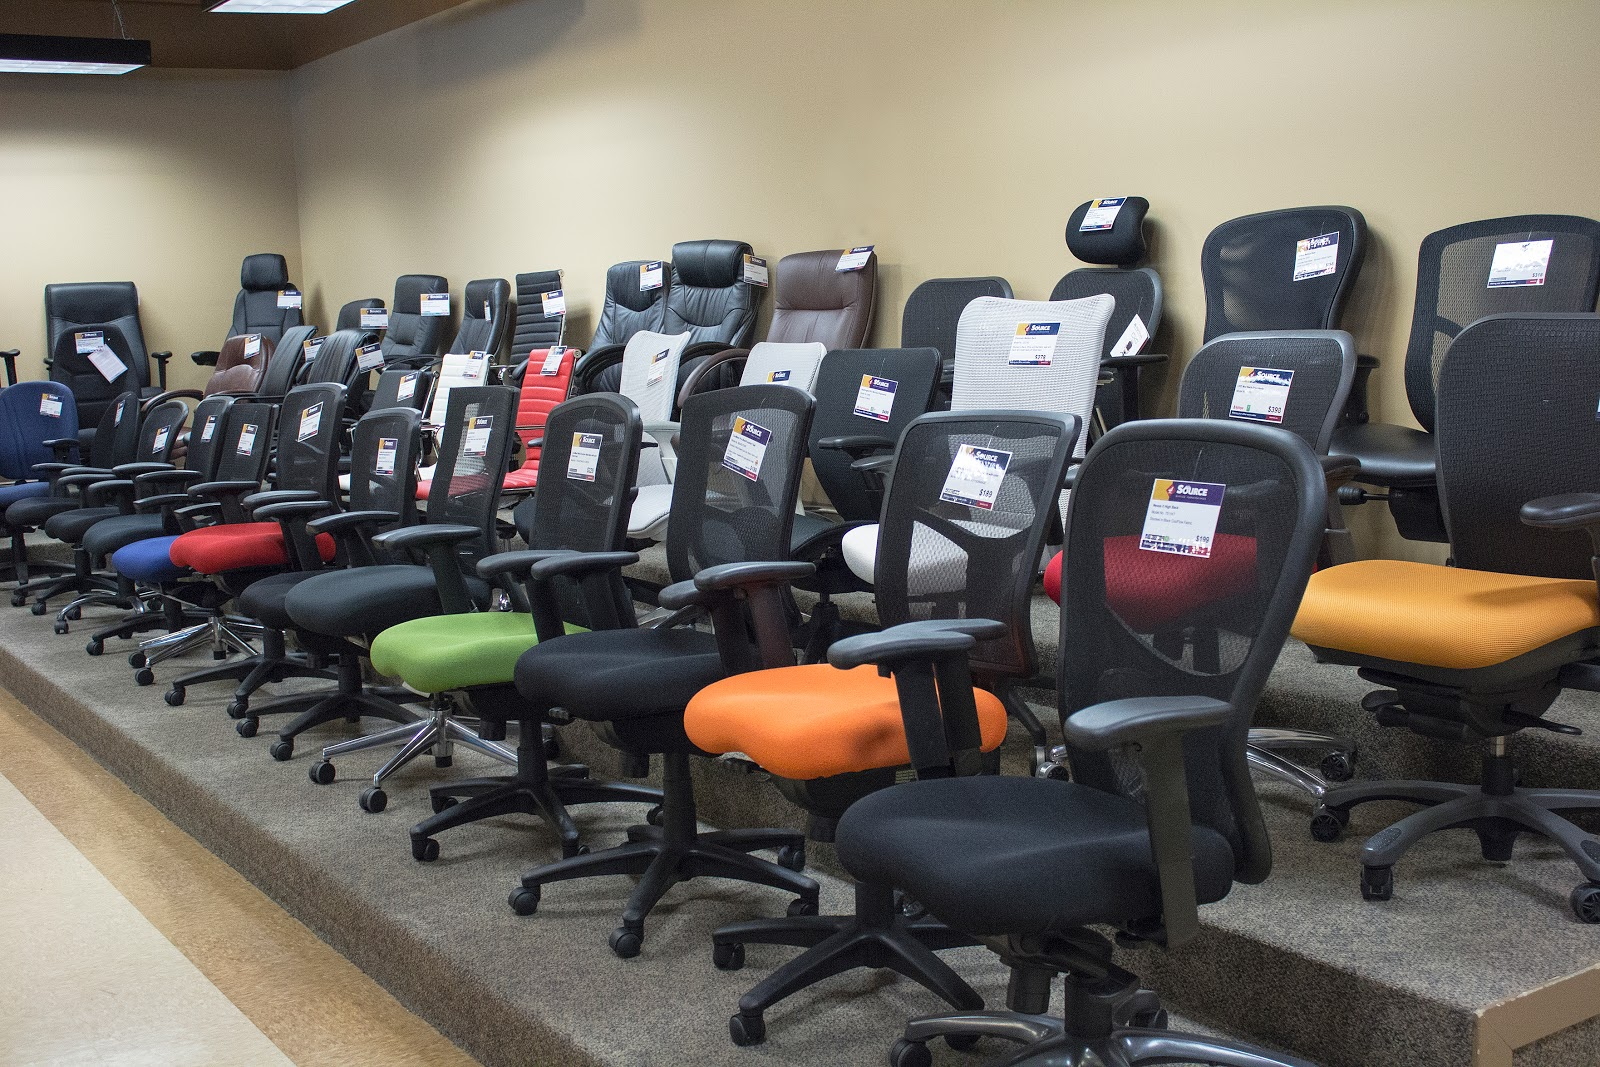 office chair kelowna hanging with stand canada wildest earth photography videography